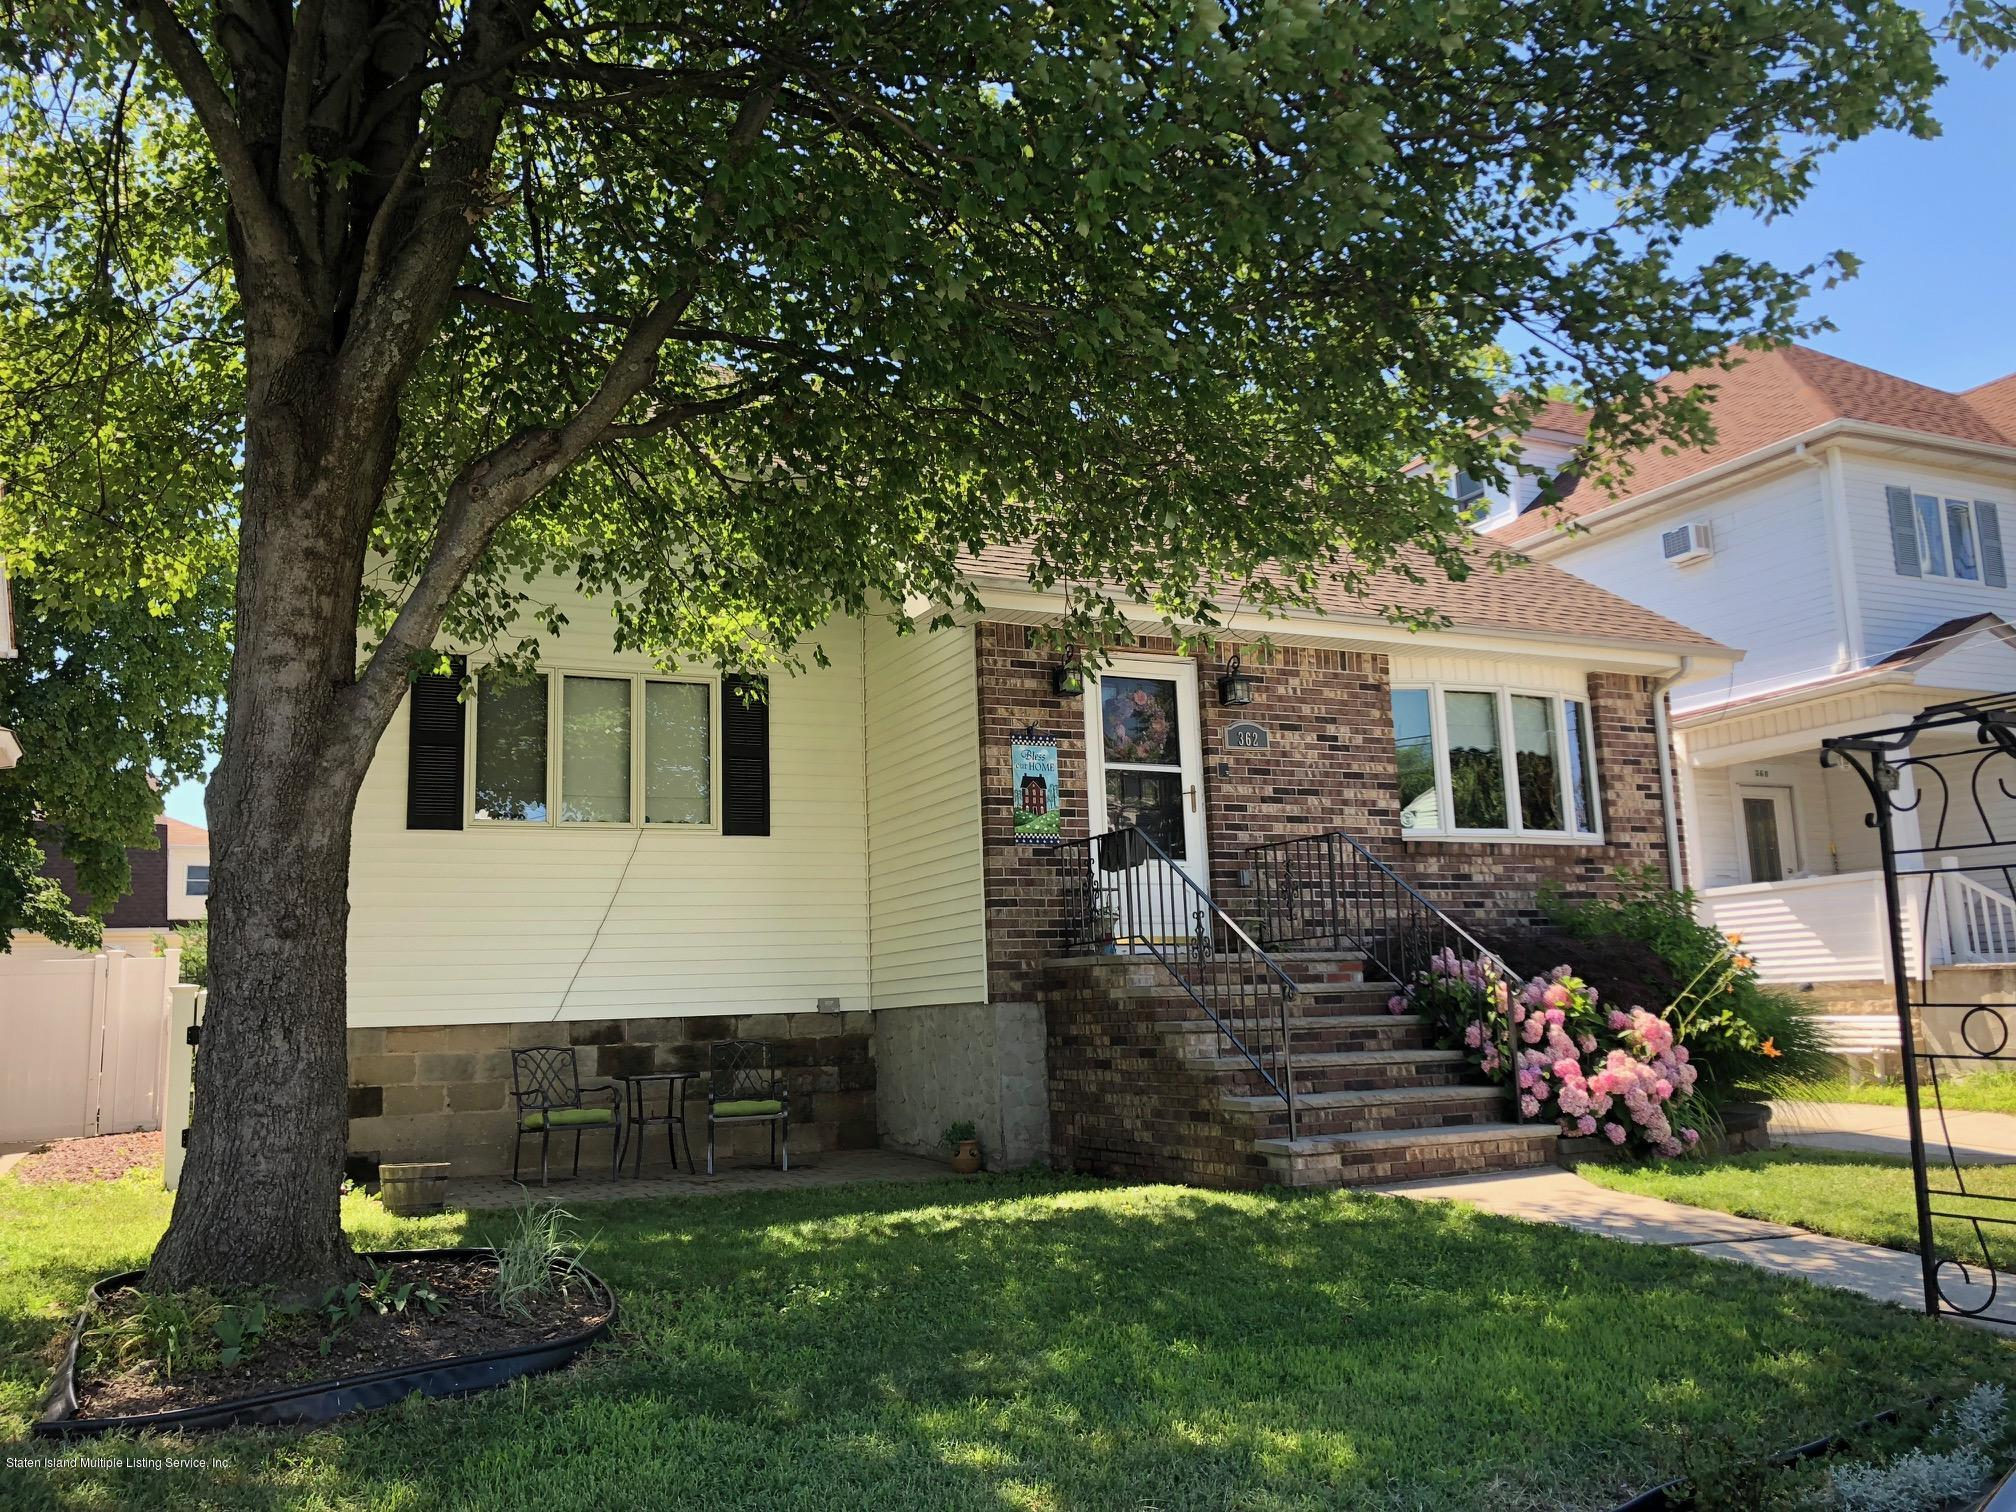 Single Family - Detached 362 Brehaut Avenue  Staten Island, NY 10307, MLS-1120848-4